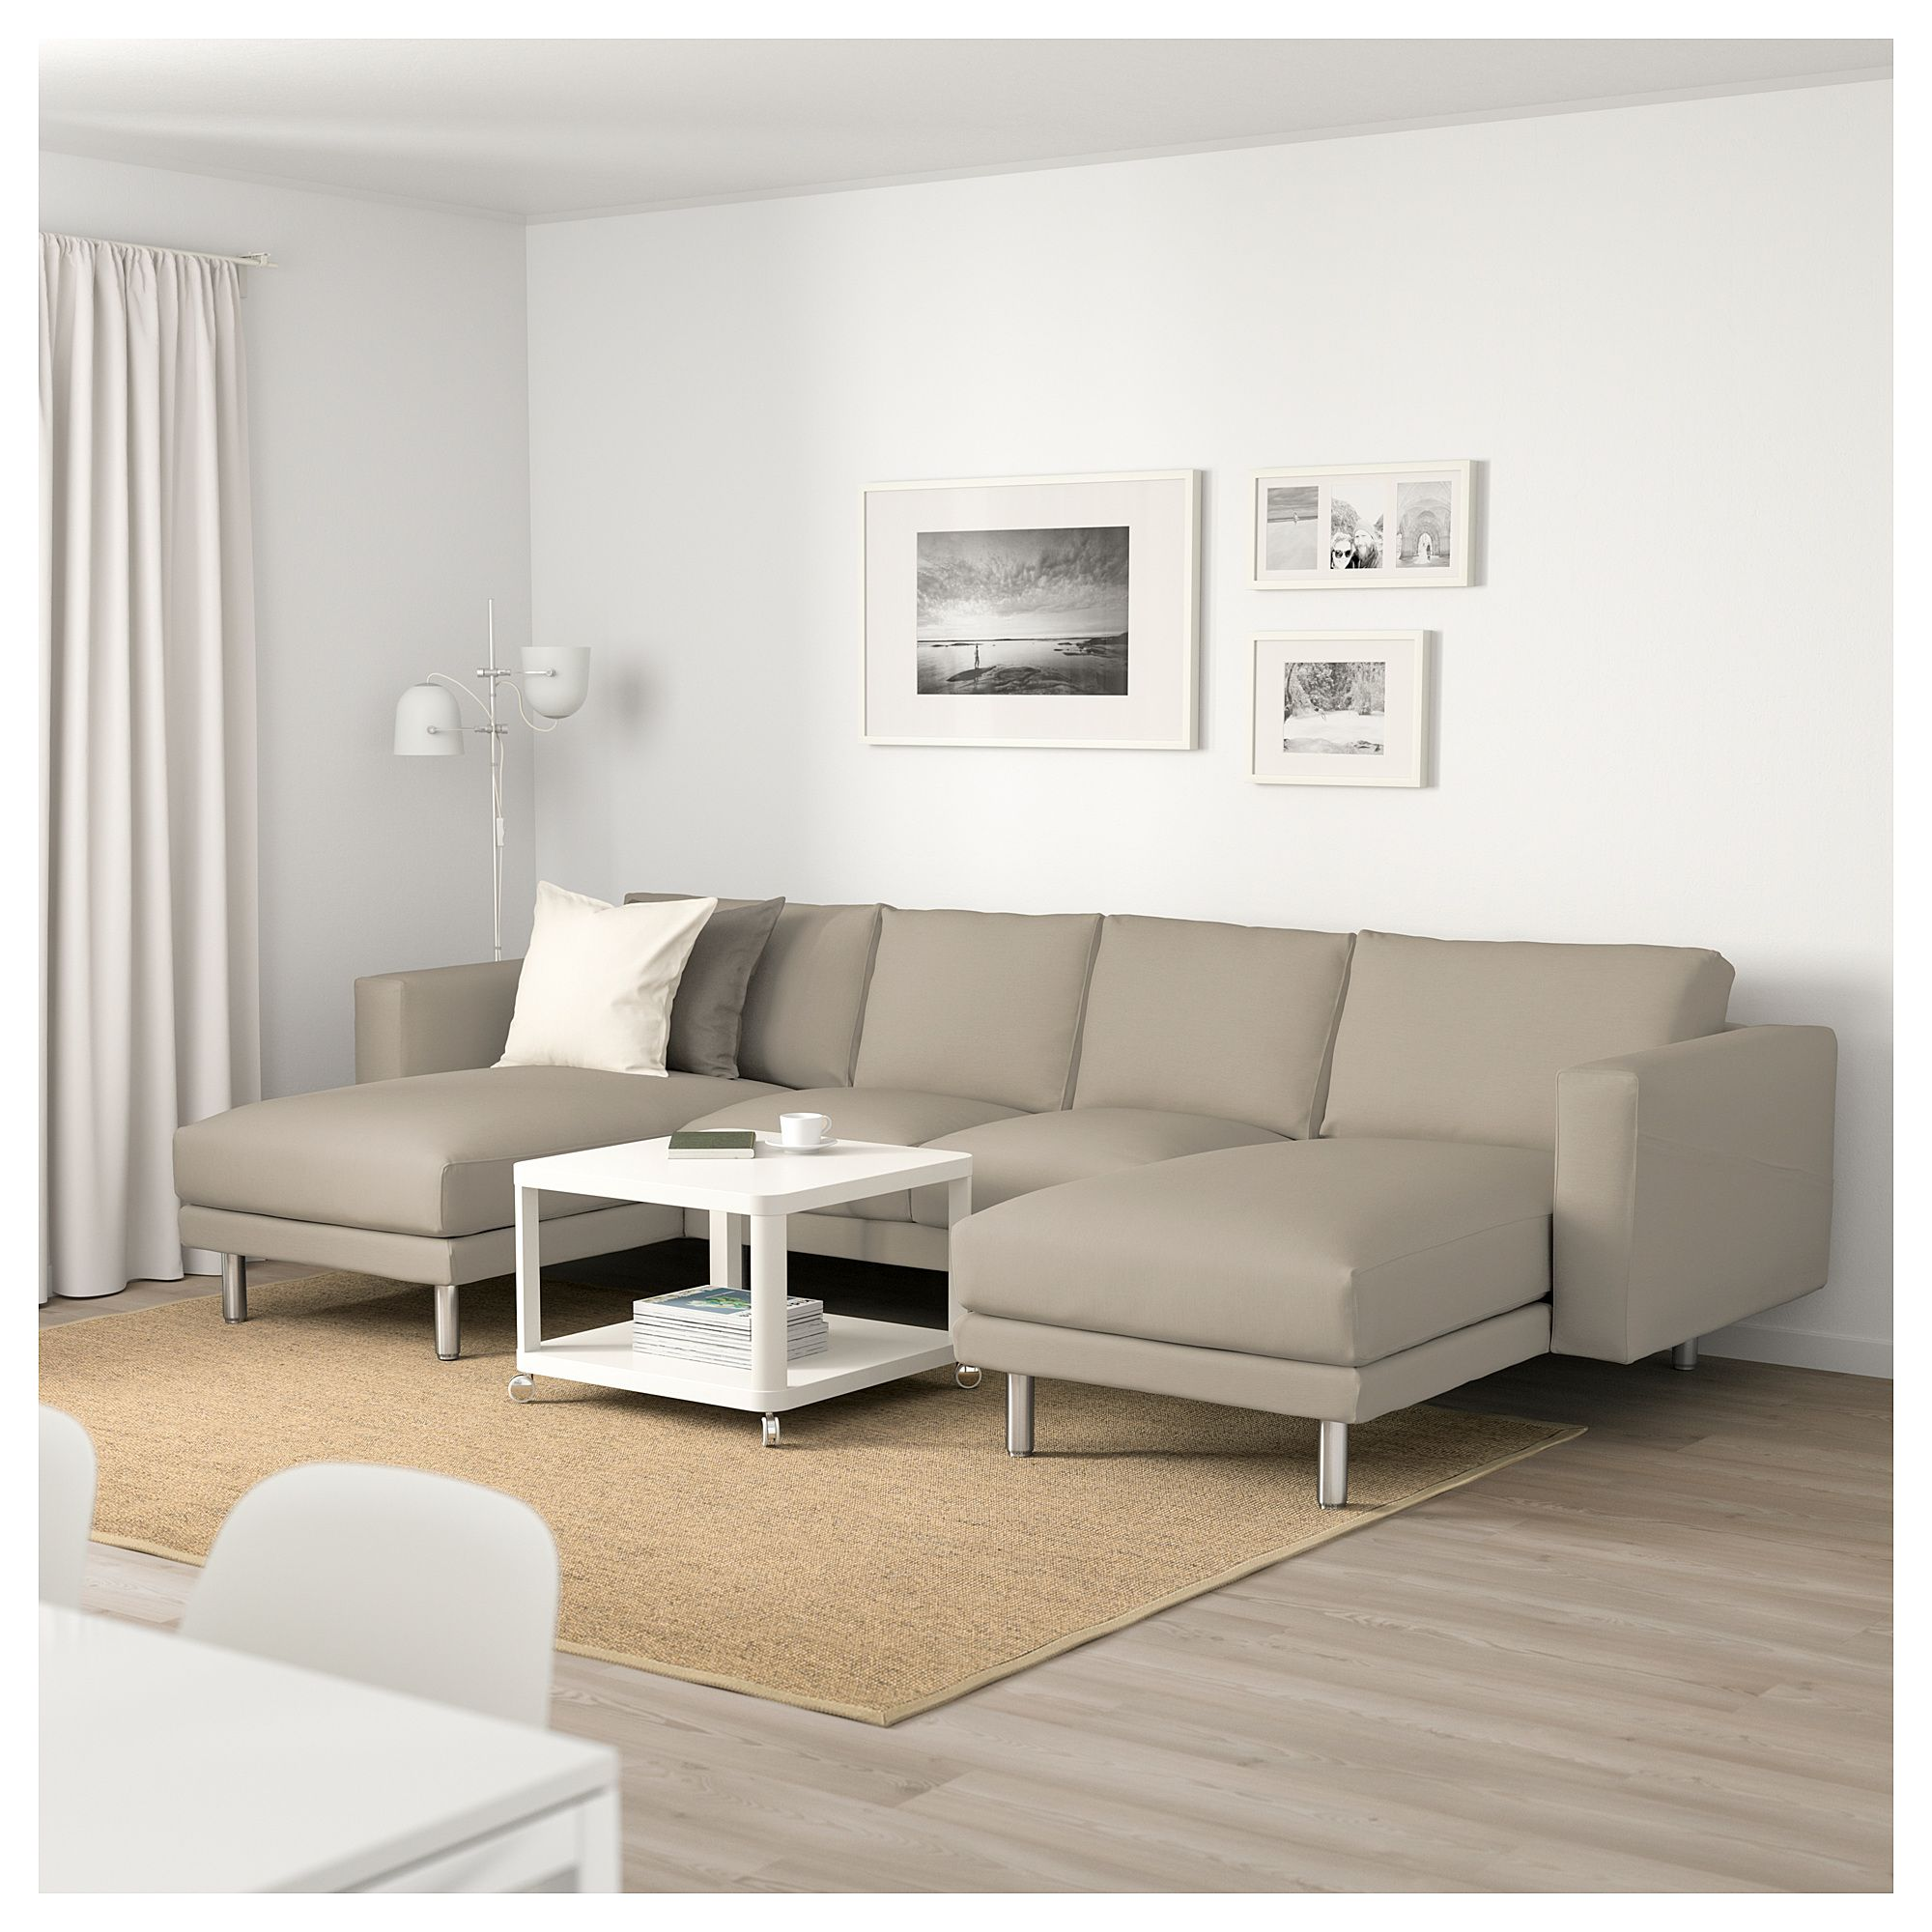 Home and Furniture FurnishingsProductsNorsborgIkea Furniture FurnishingsProductsNorsborgIkea and Home and Furniture and Home Furniture FurnishingsProductsNorsborgIkea zpMSUVGq